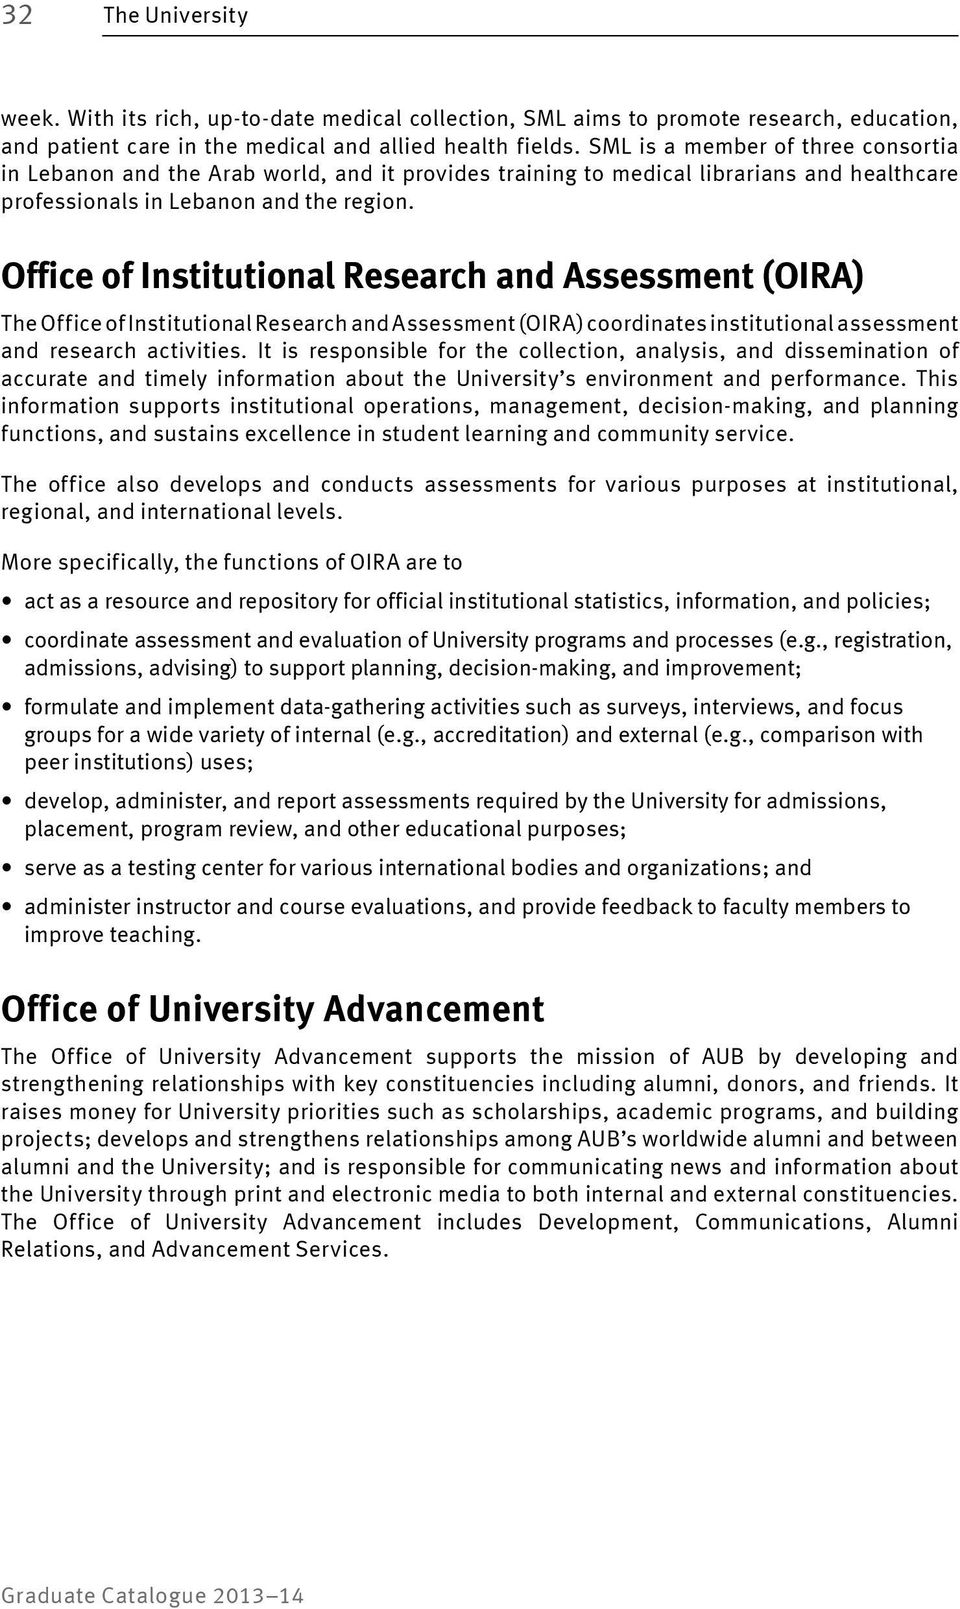 Office of Institutional Research and Assessment (OIRA) The Office of Institutional Research and Assessment (OIRA) coordinates institutional assessment and research activities.